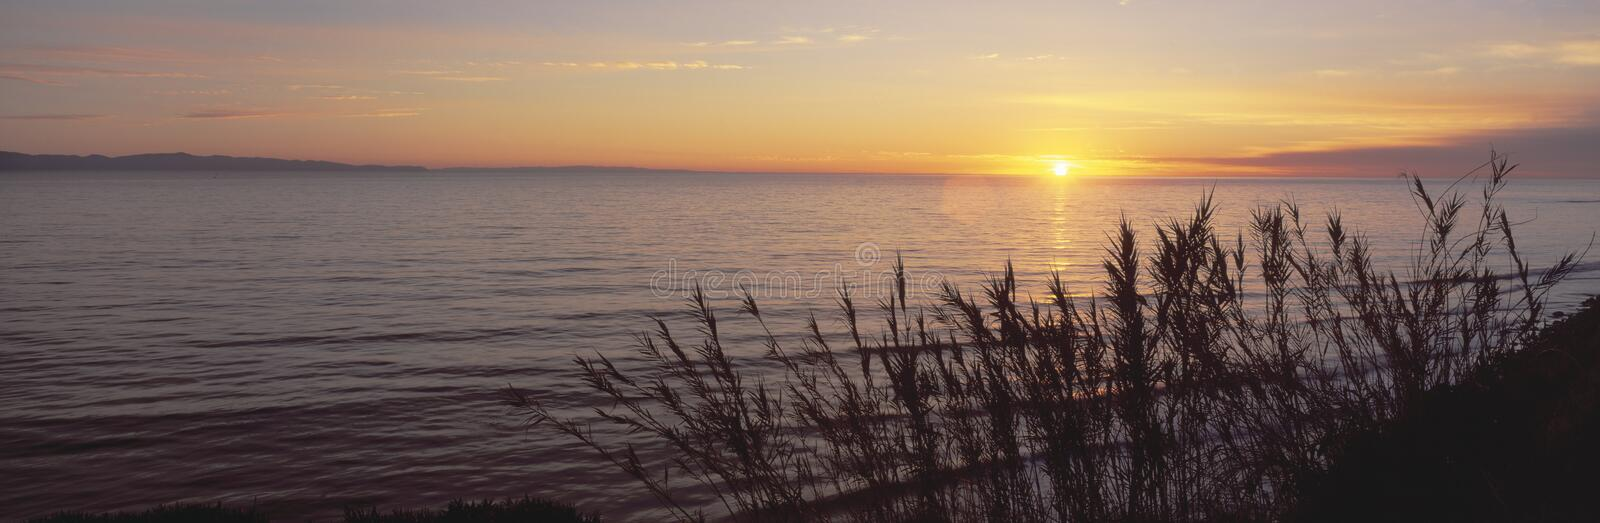 Download Sunset over Pacific Ocean stock image. Image of color - 23176487